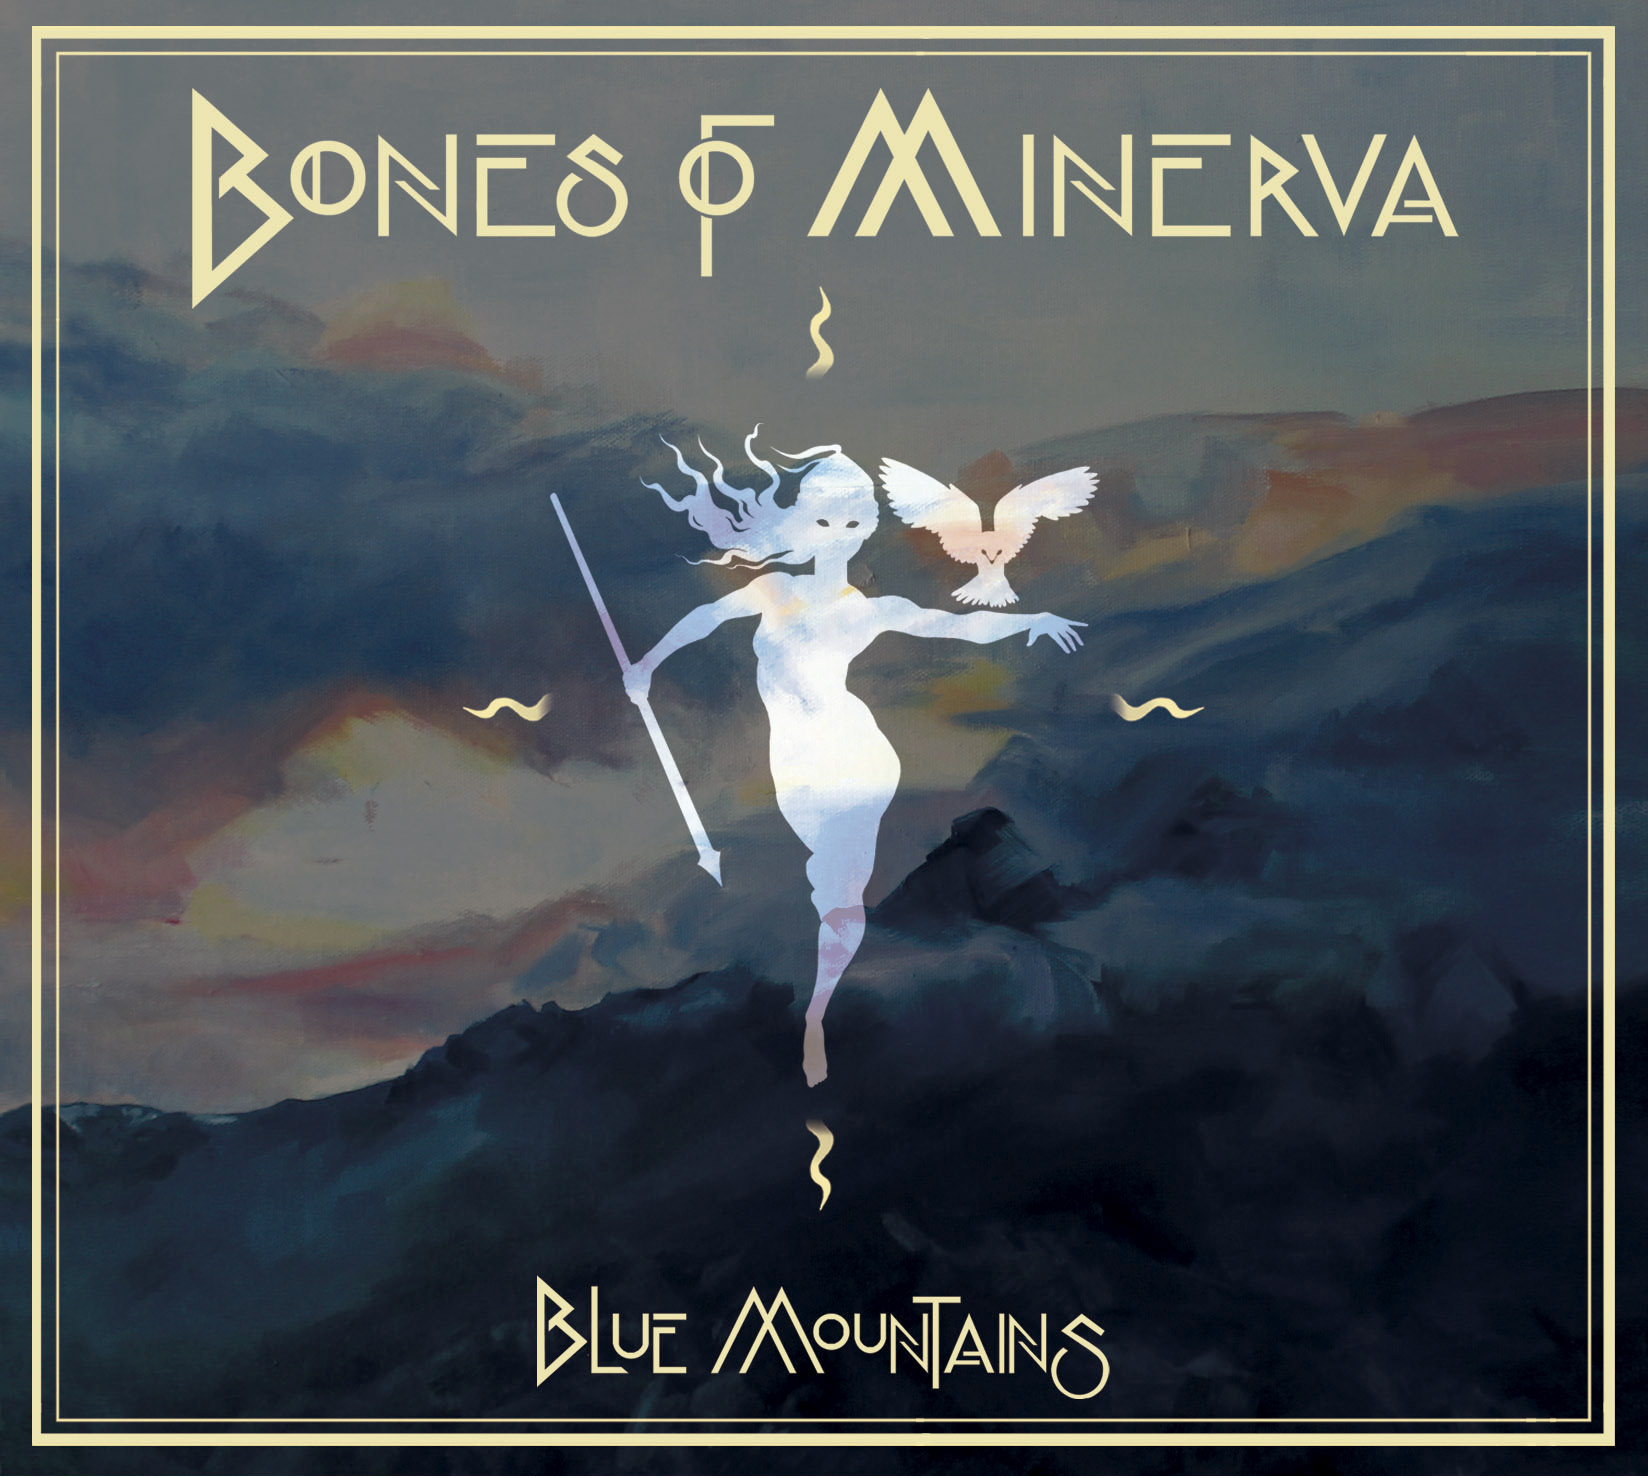 Bones of Minerva presenta la edición especial de Blue Mountains